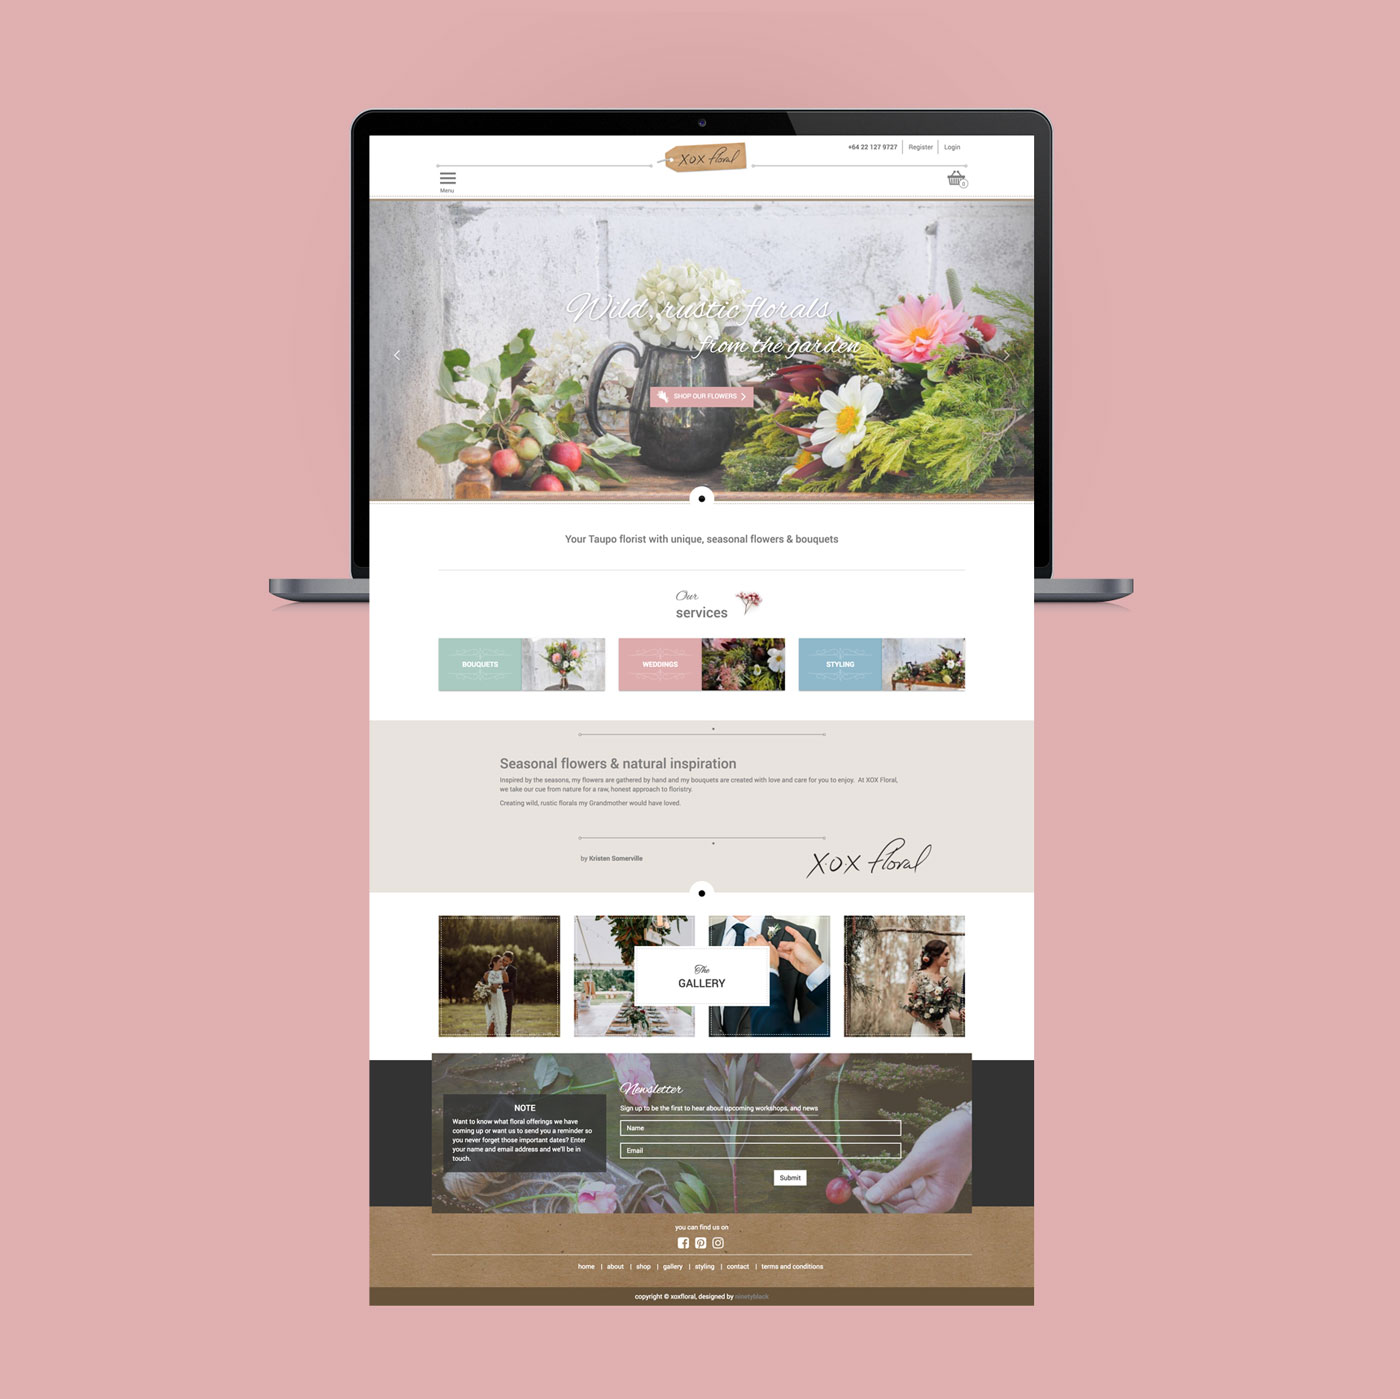 XOX Floral, Web Design, Development, Digital Marketing, ninetyblack